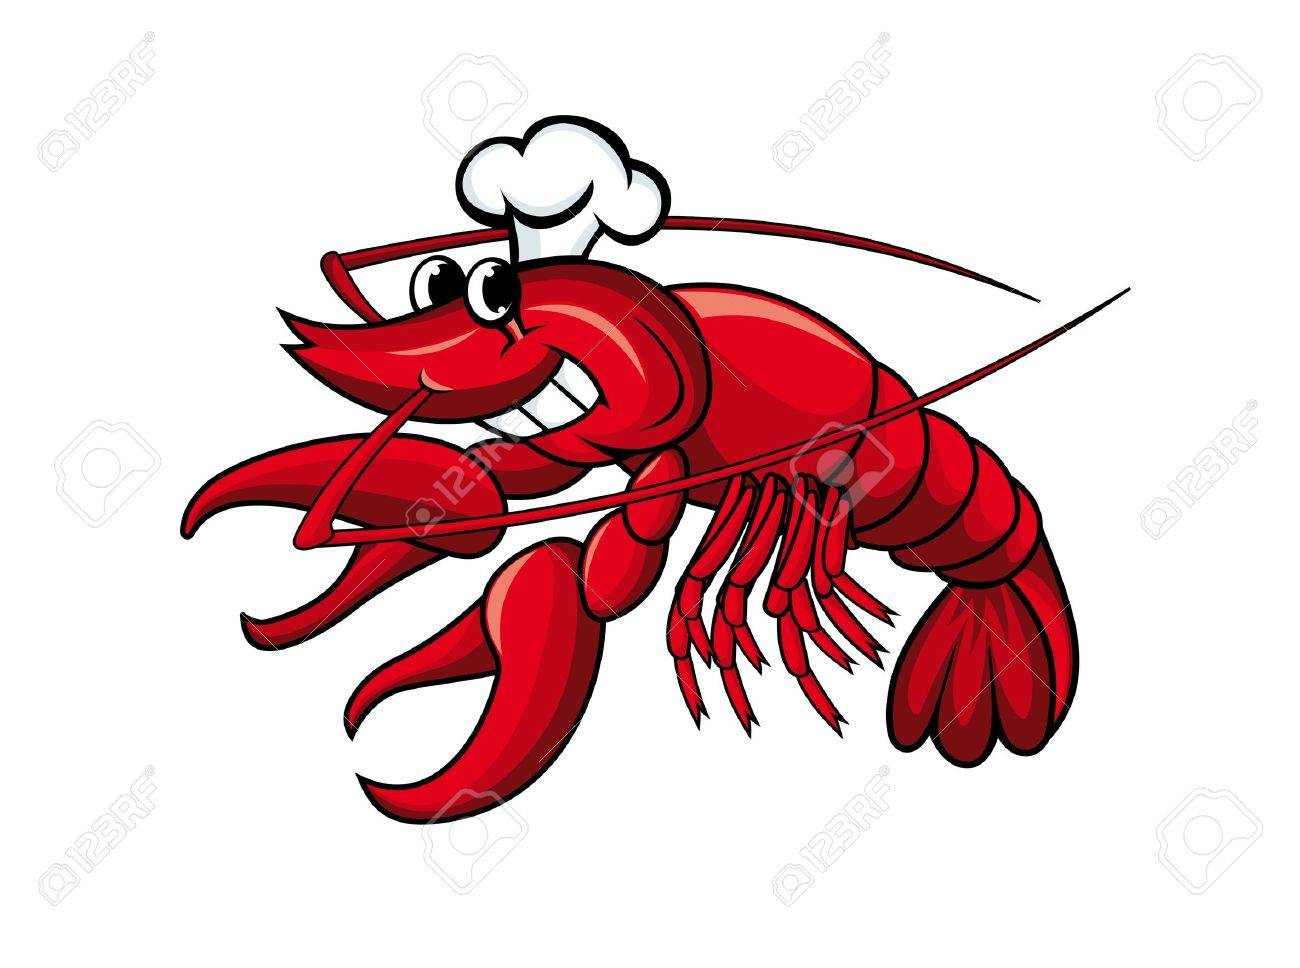 Smiling red crayfish or shrimp isolated on white Stock Vector - 10371921